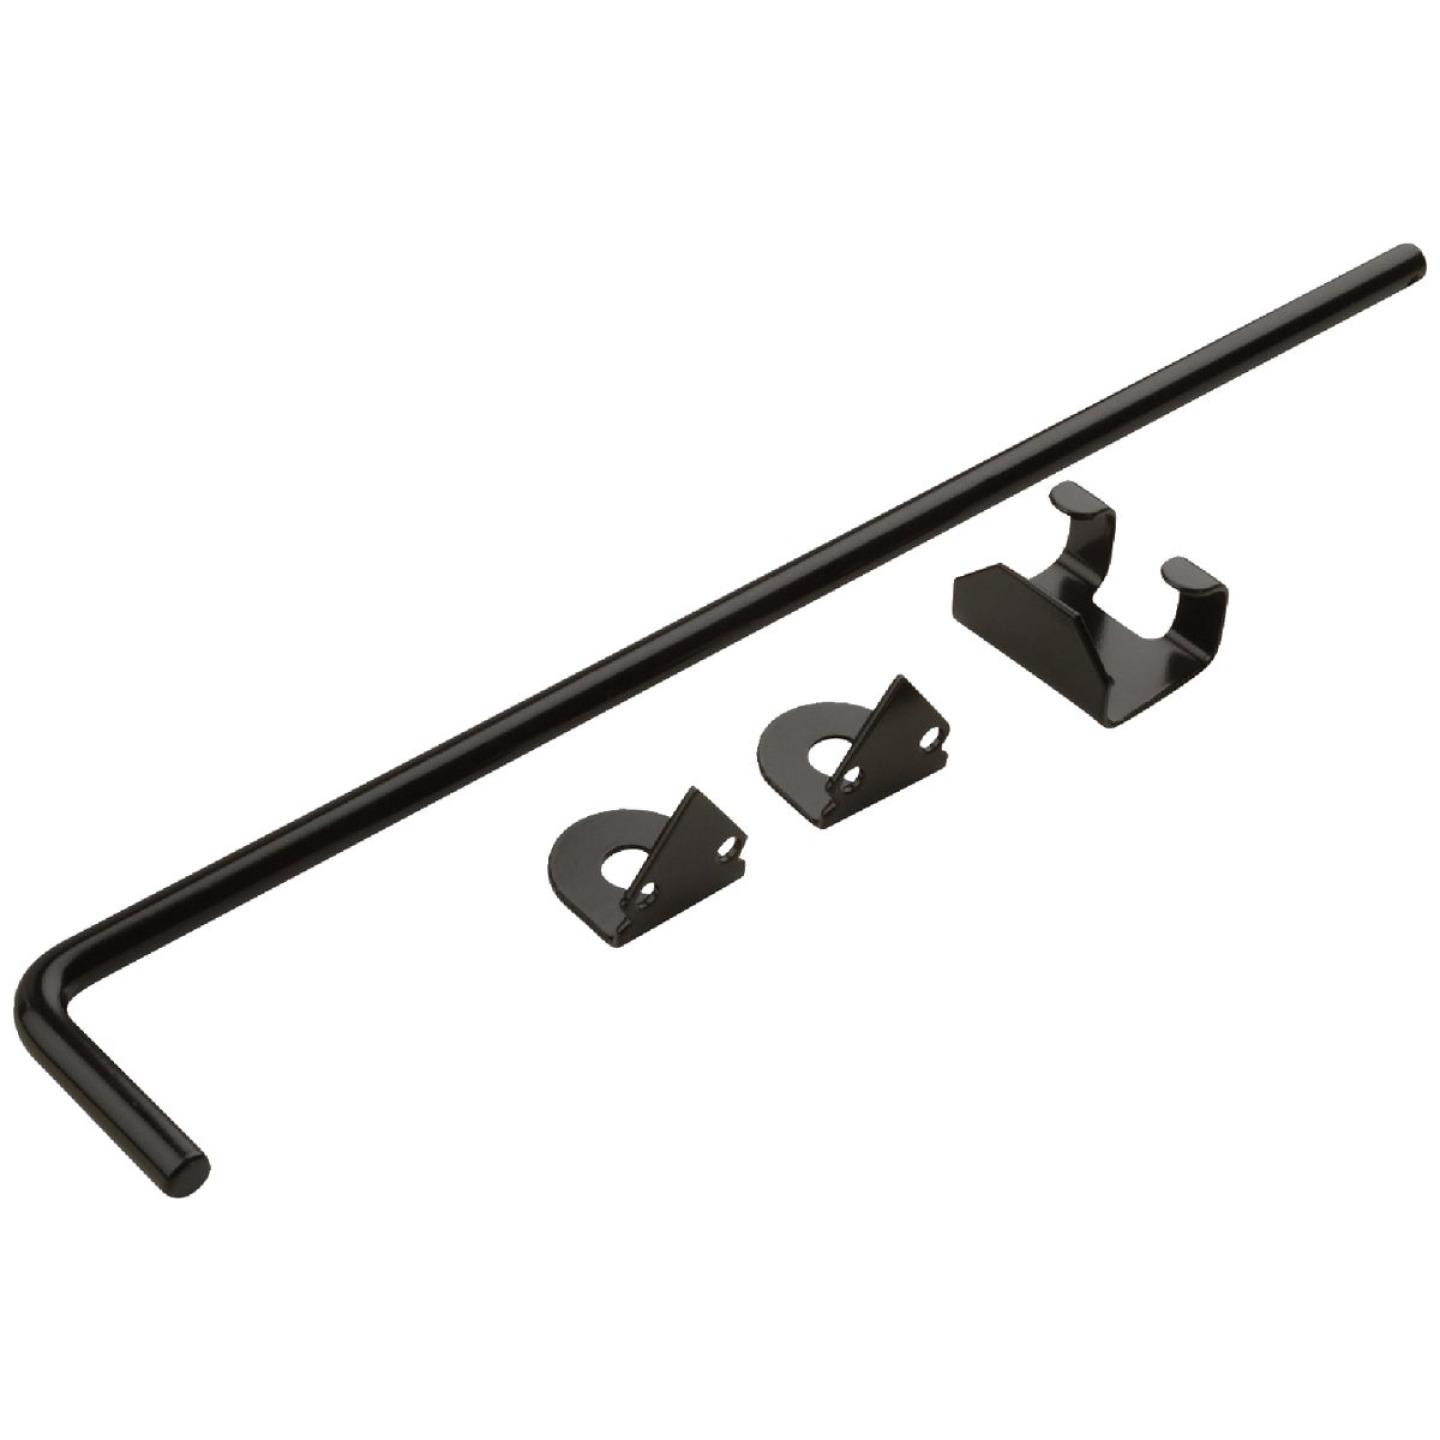 National 1/2 In. X 18 In. Black Steel Cane Bolt Image 1